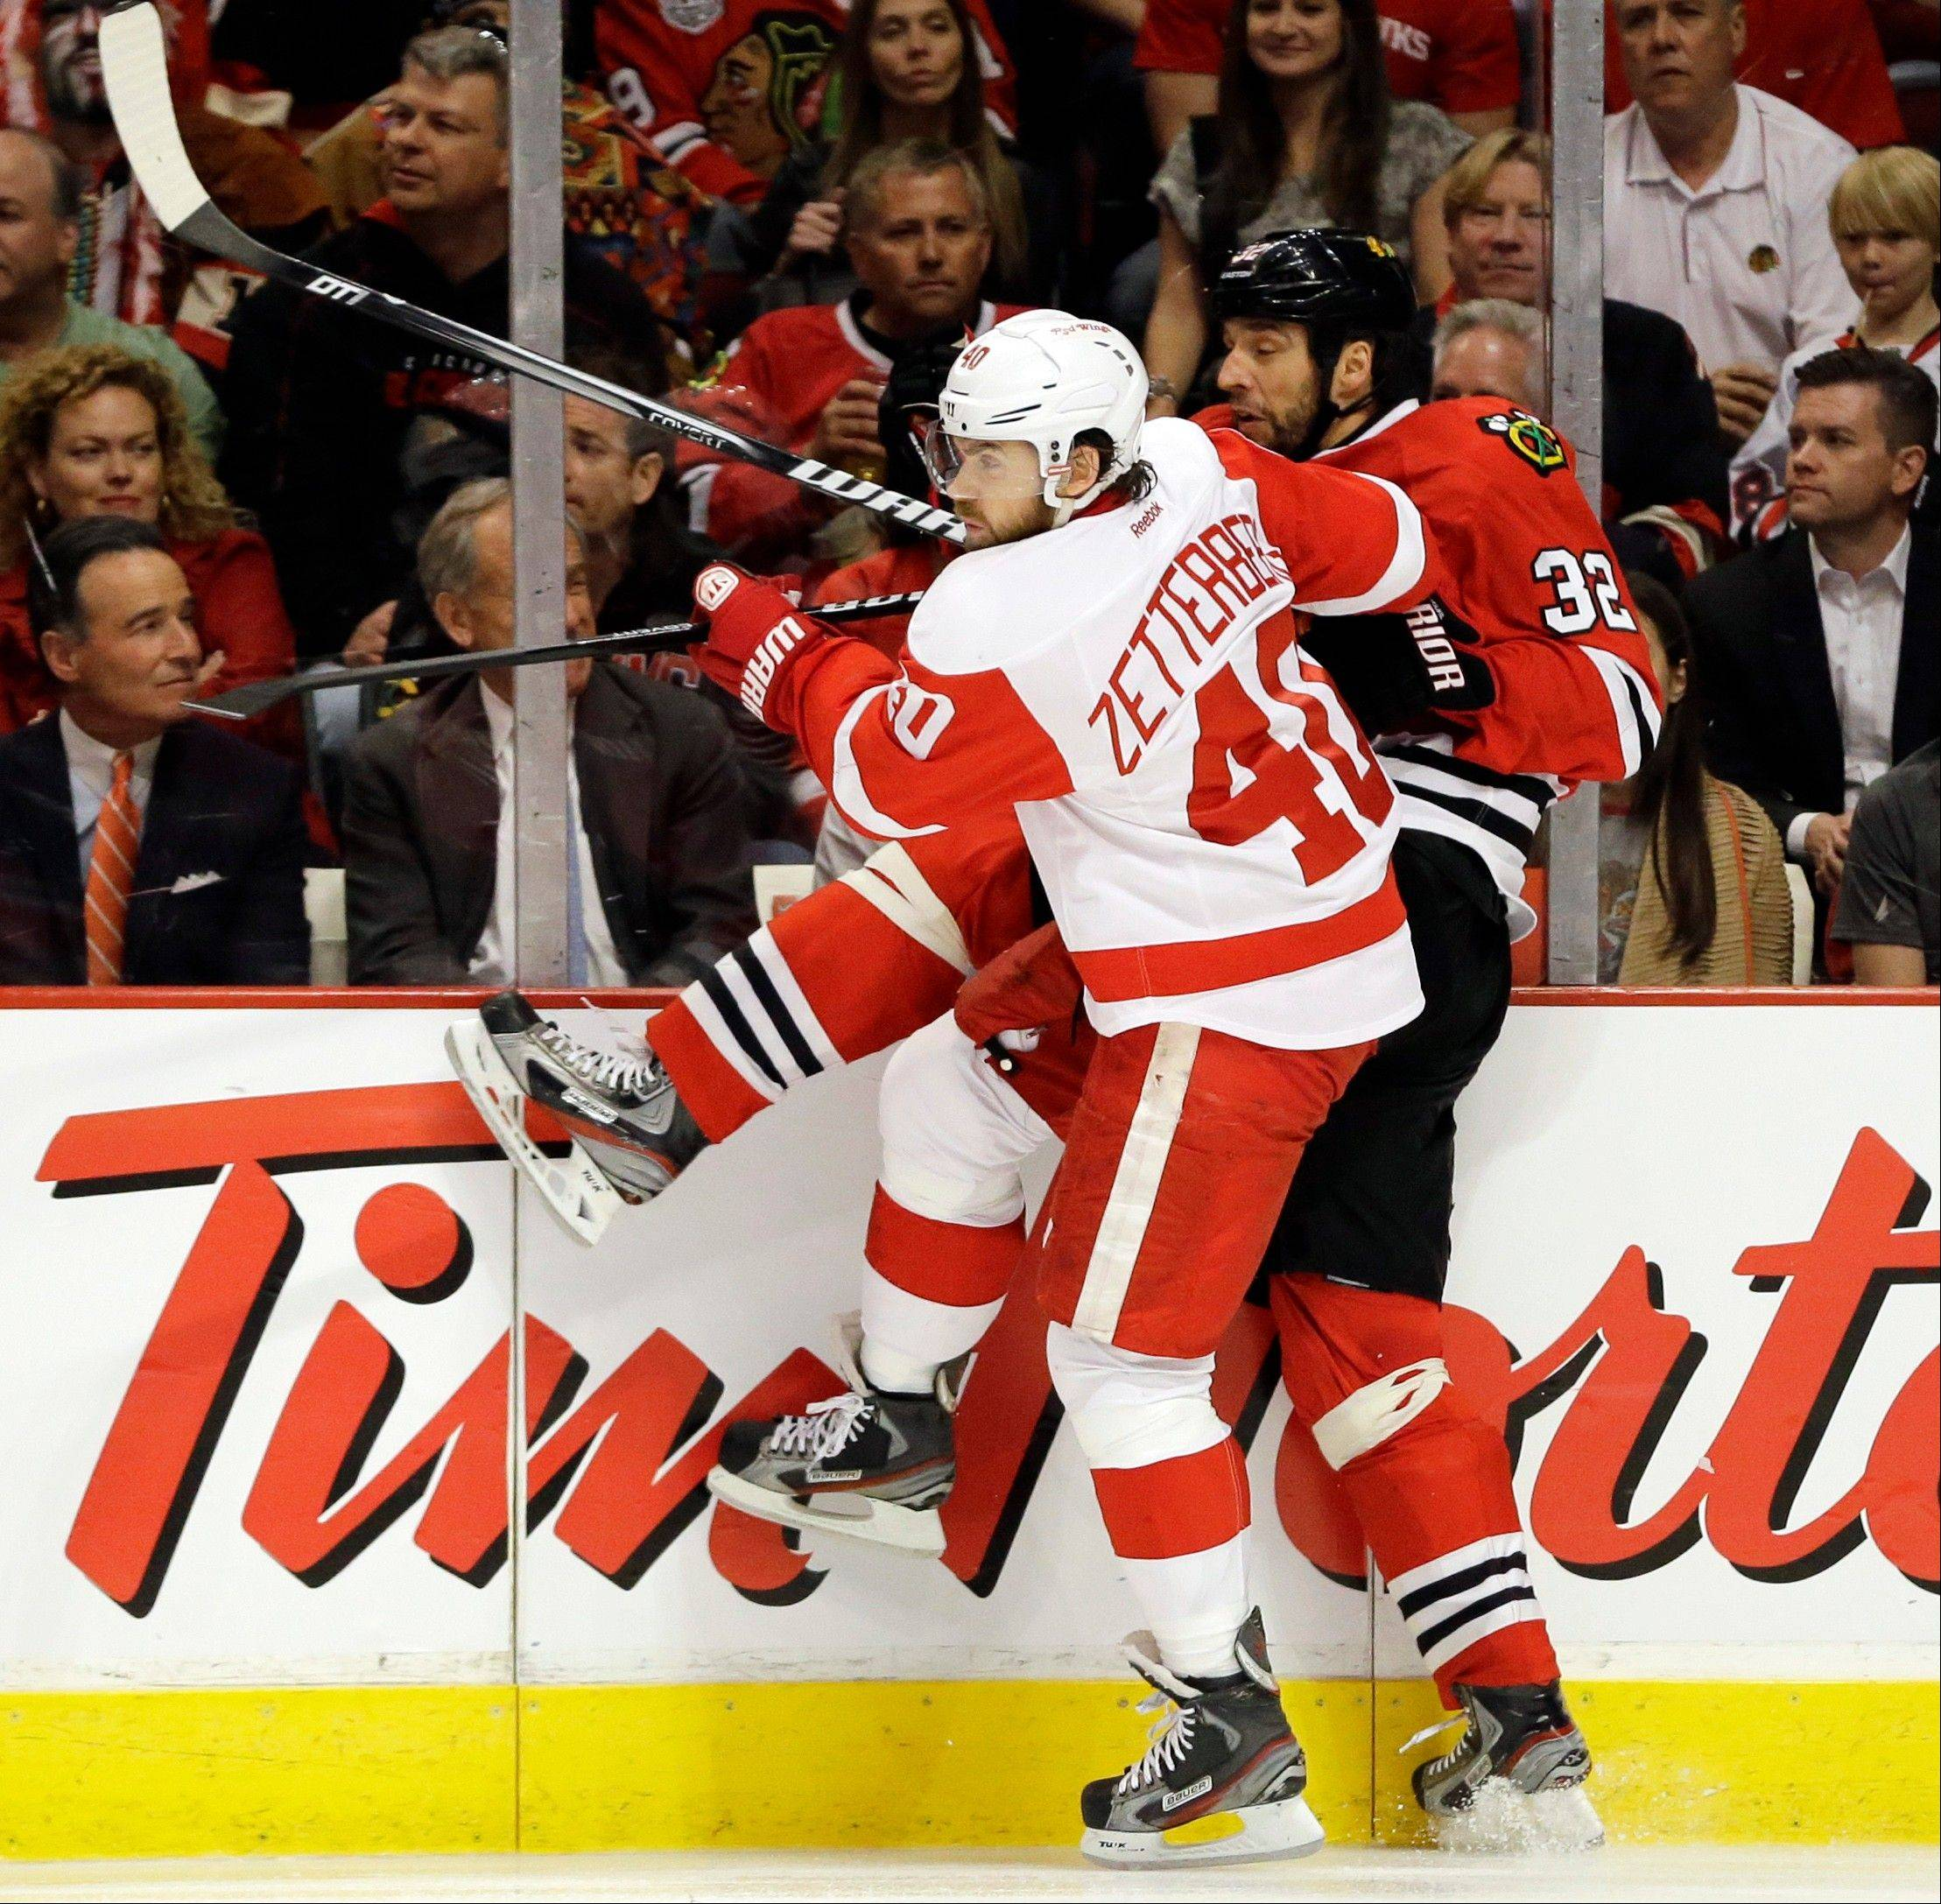 The Hawks� Michal Rozsival (32) is checked by Detroit Red Wings� Henrik Zetterberg (40) during the first period of Game 1 of an NHL hockey playoffs Western Conference semifinal in Chicago, Wednesday, May 15, 2013. (AP Photo/Nam Y. Huh)